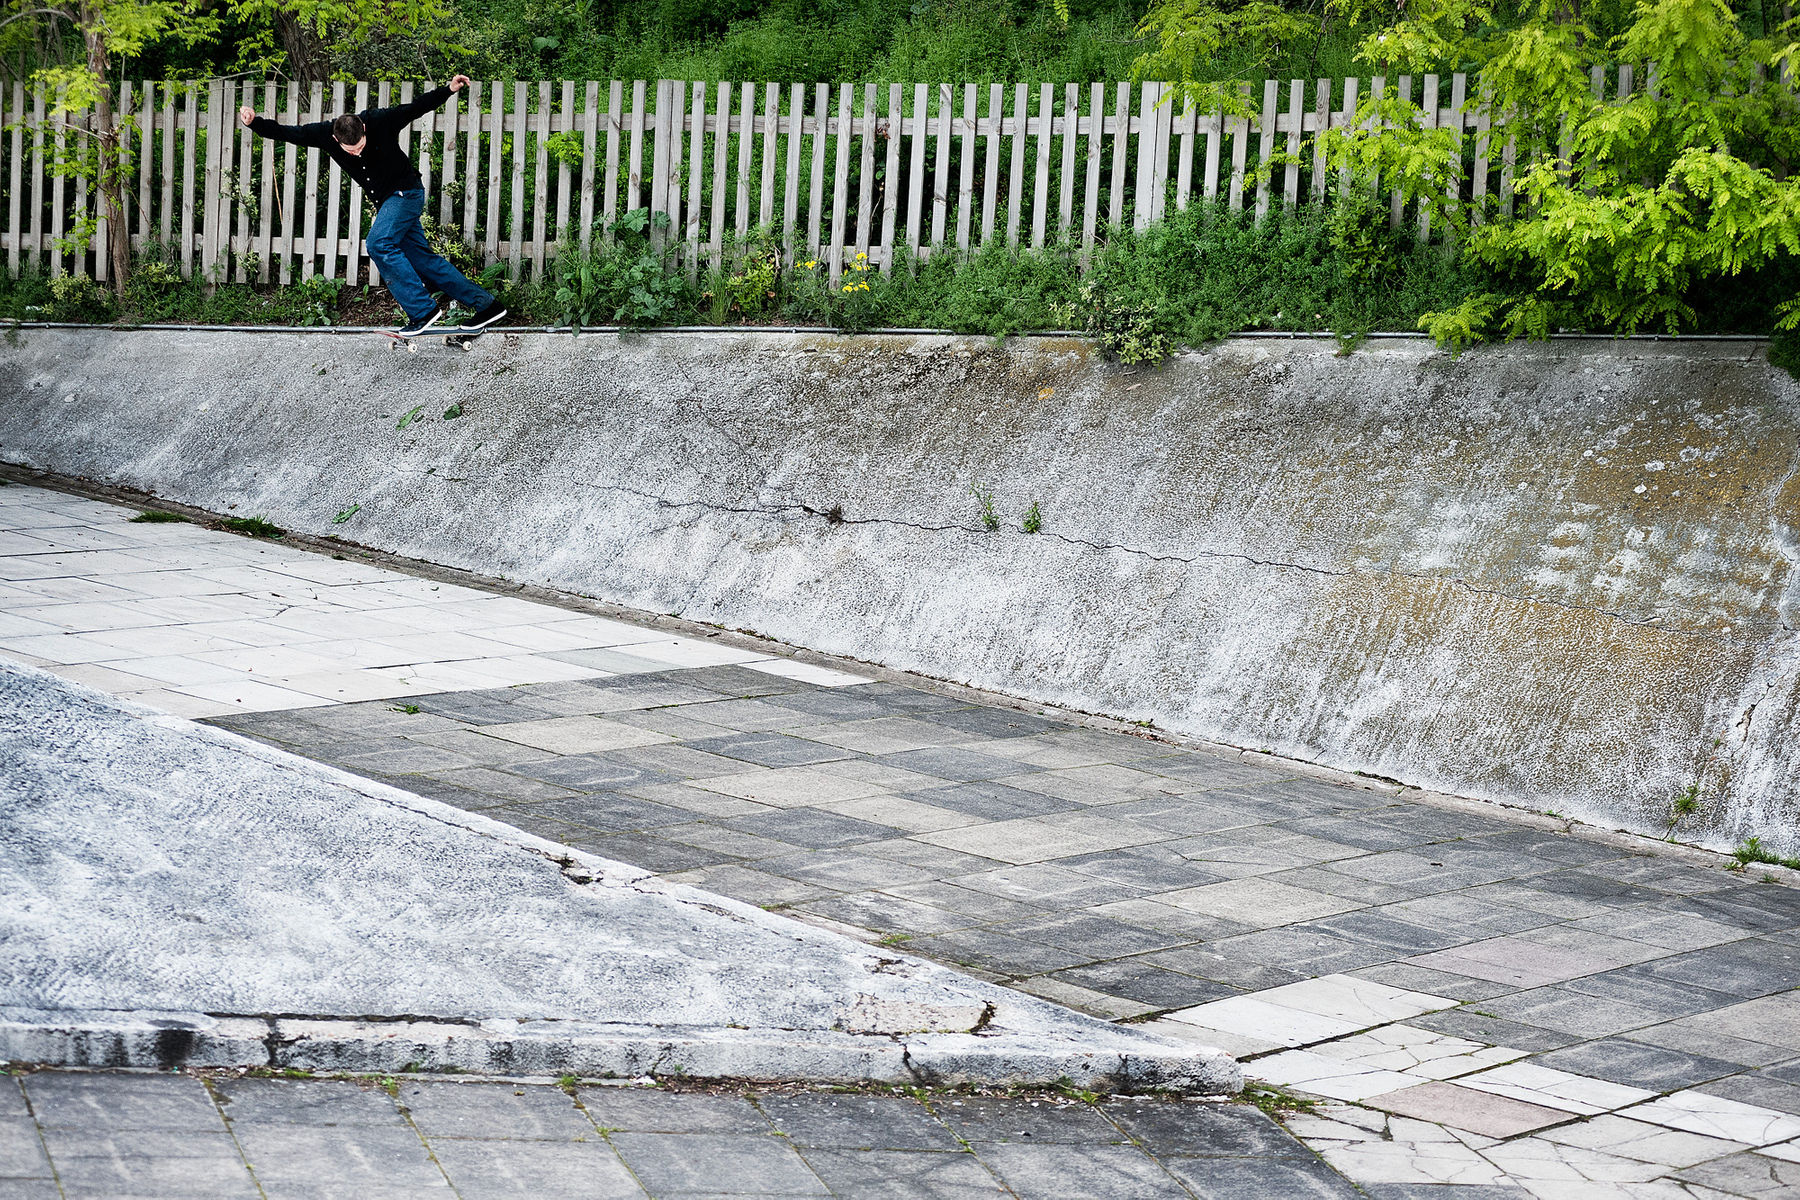 charlie_young_backside_tailslide_grey_henry_kingsford